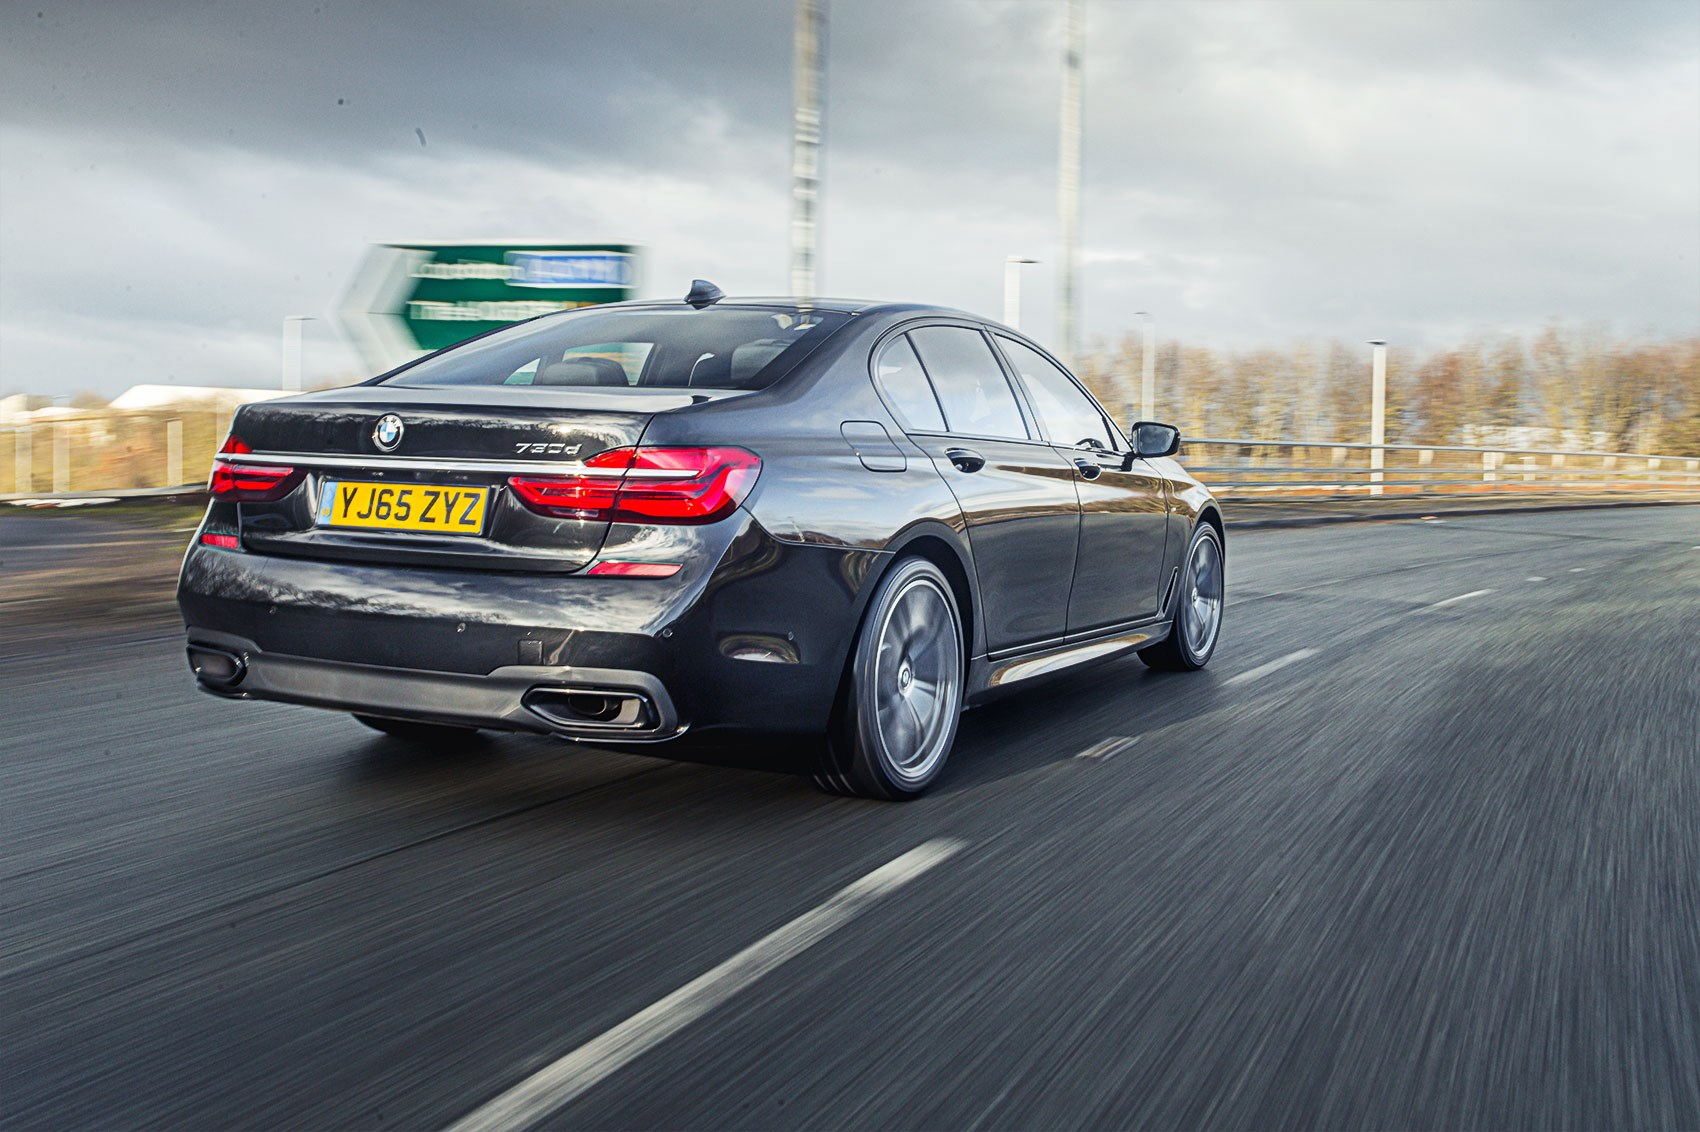 Ultimately, still a driving machine: Our Cars, BMW 7-series, CAR+ ...